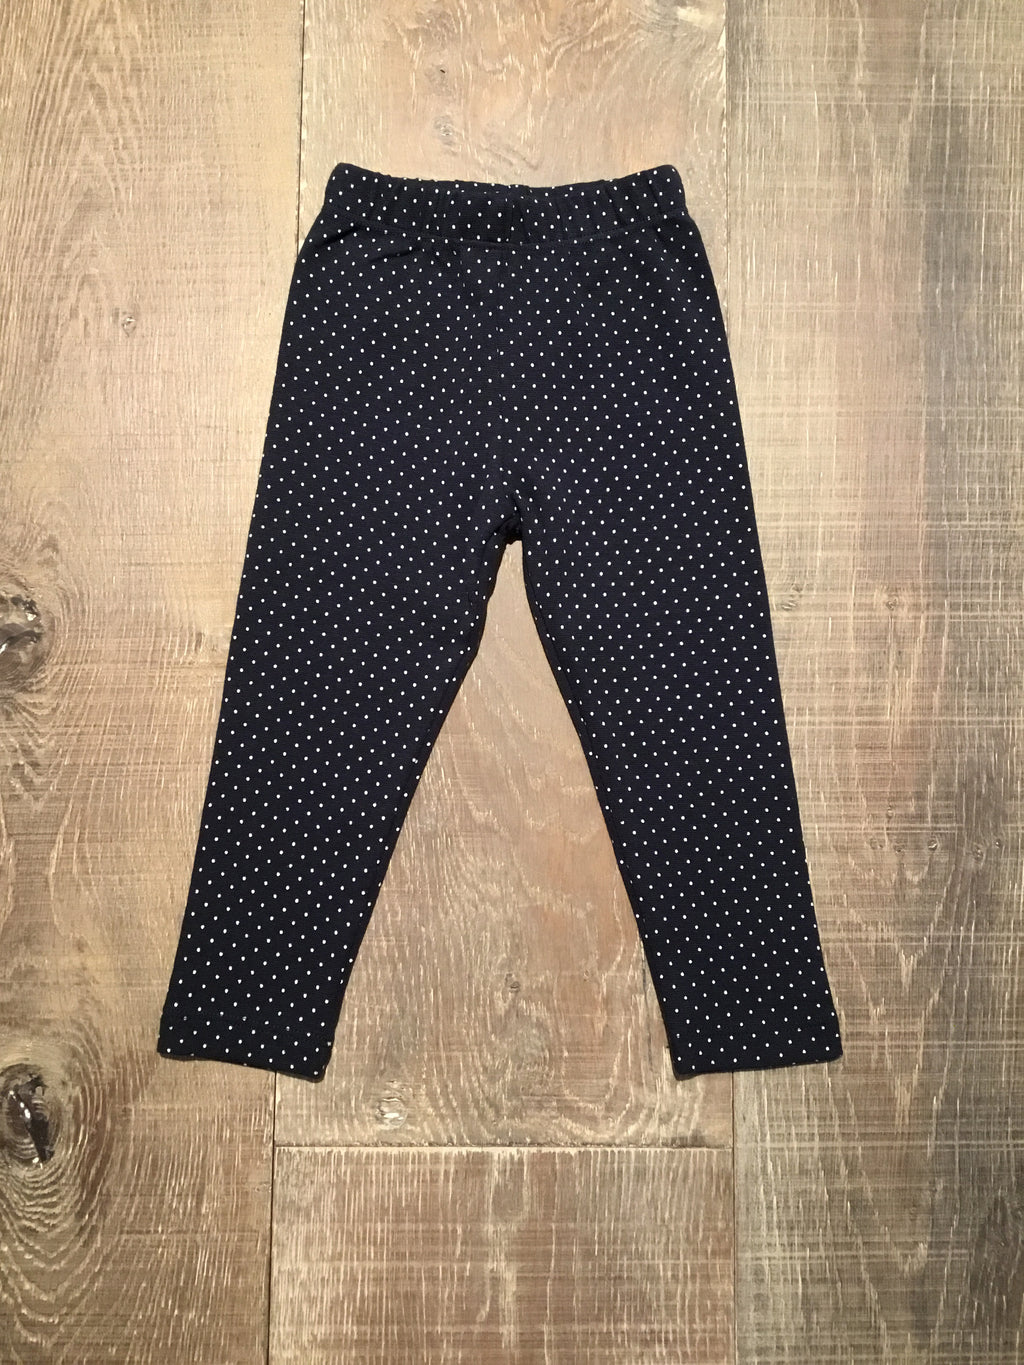 Infant Dotted Leggings by Luigi